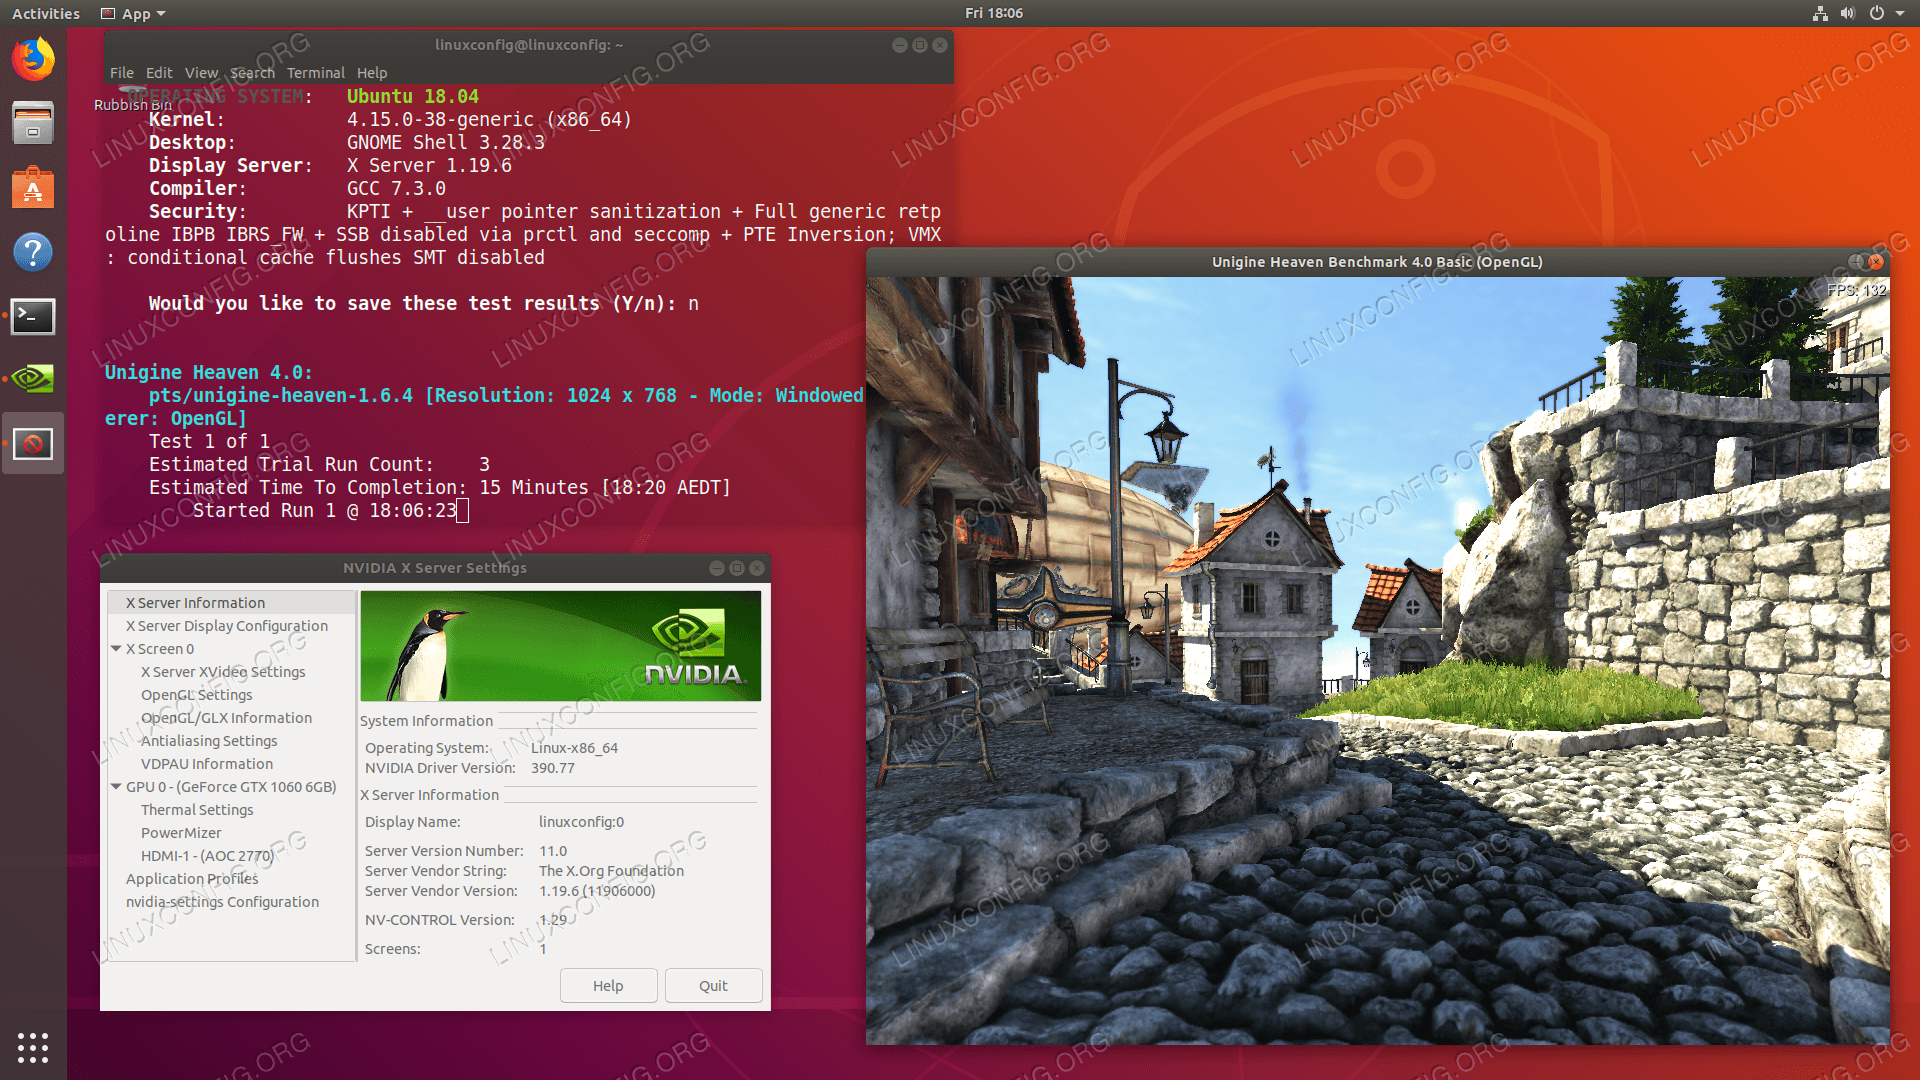 How to install the NVIDIA drivers on Ubuntu 18 04 Bionic Beaver